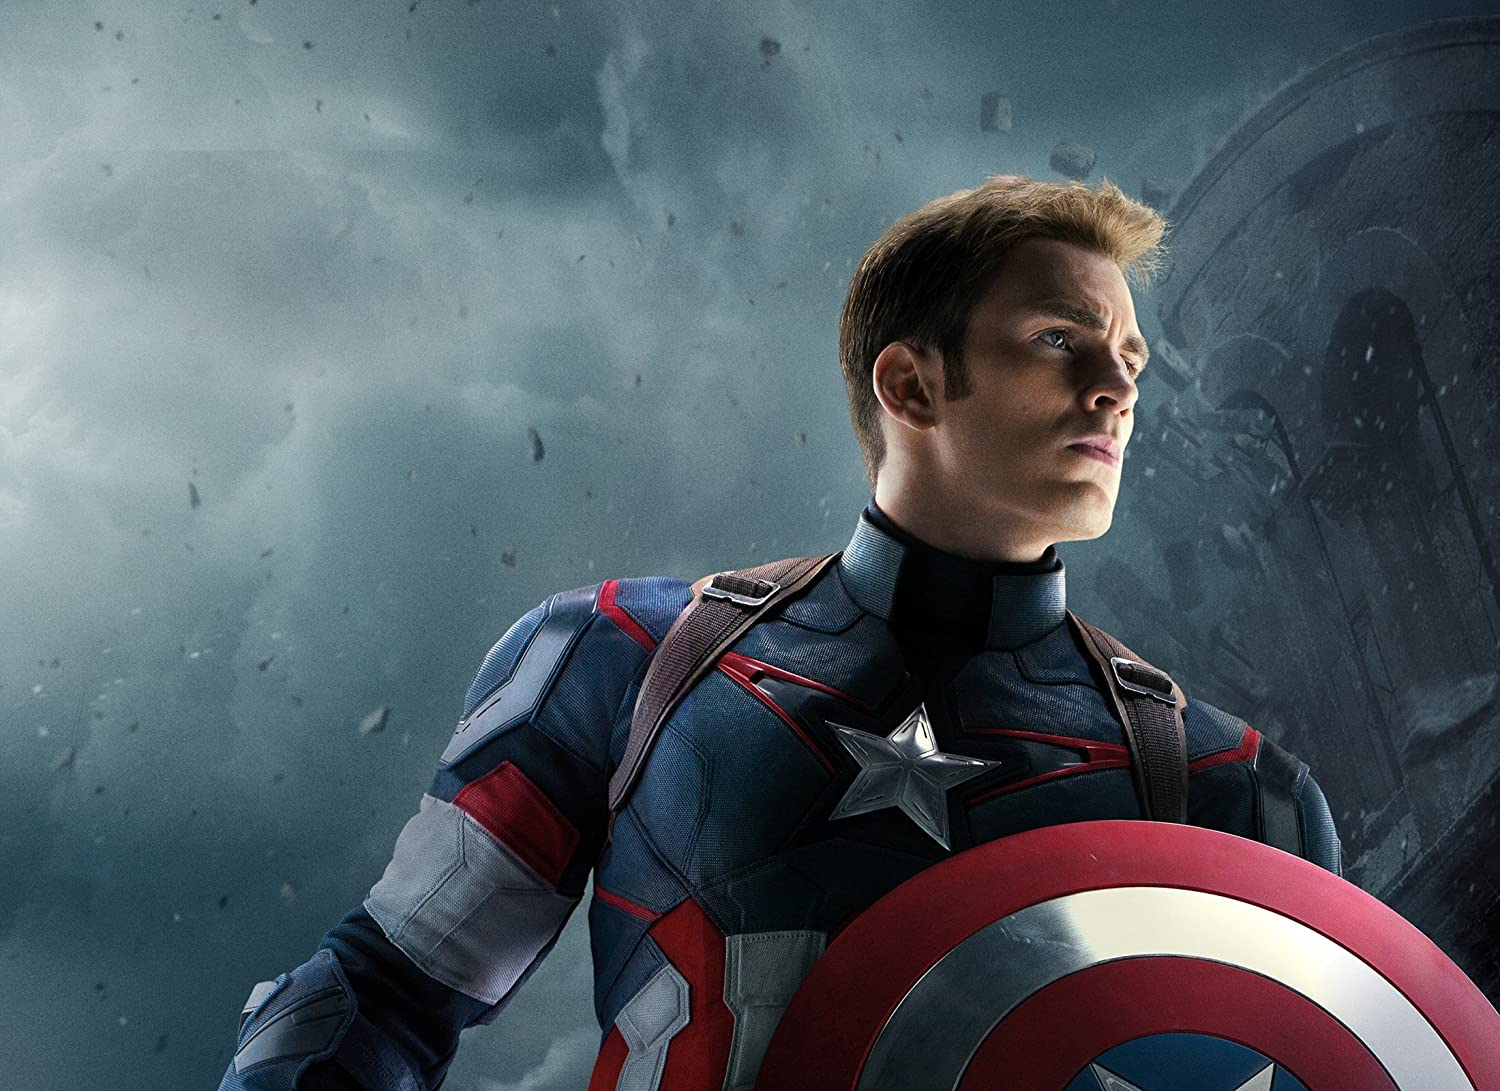 Posterhub Movie Avengers Age Of Ultron Chris Evans Captain America Hd Wall Poster Paper Multicolour Amazon In Home Kitchen